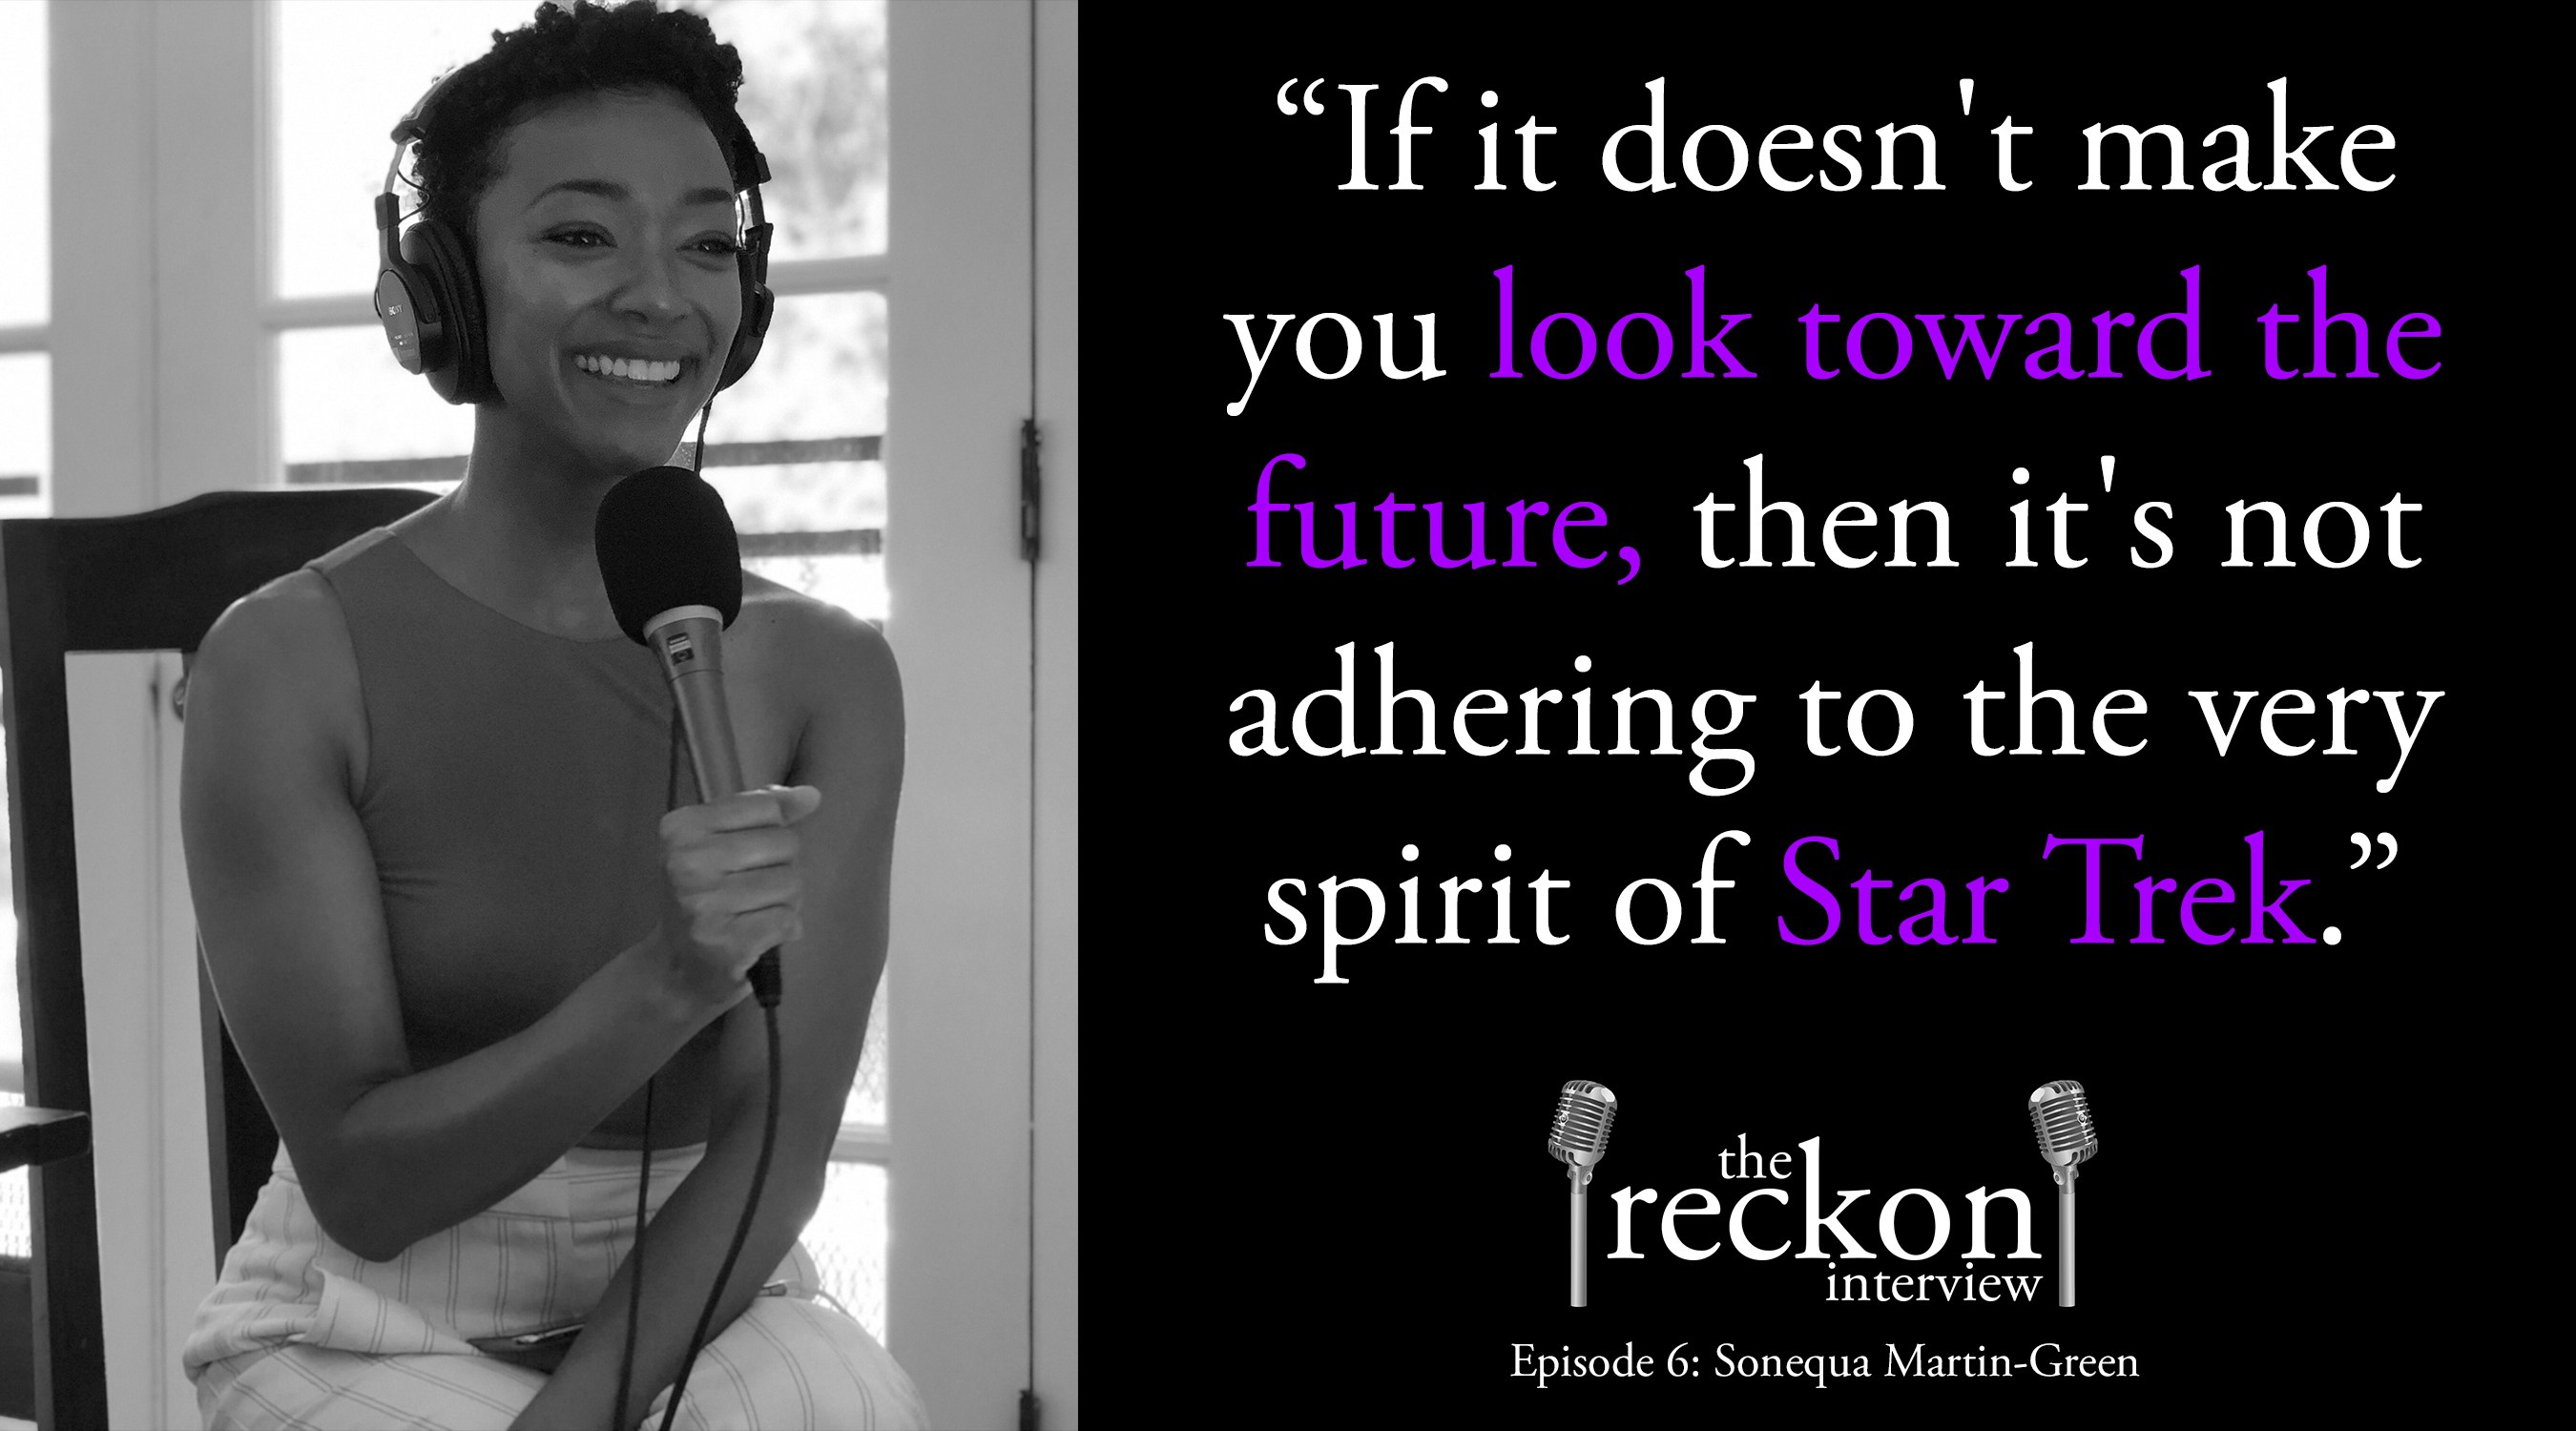 Sonequa Martin-Green on Star Trek, Walking Dead, Space Jam and Alabama